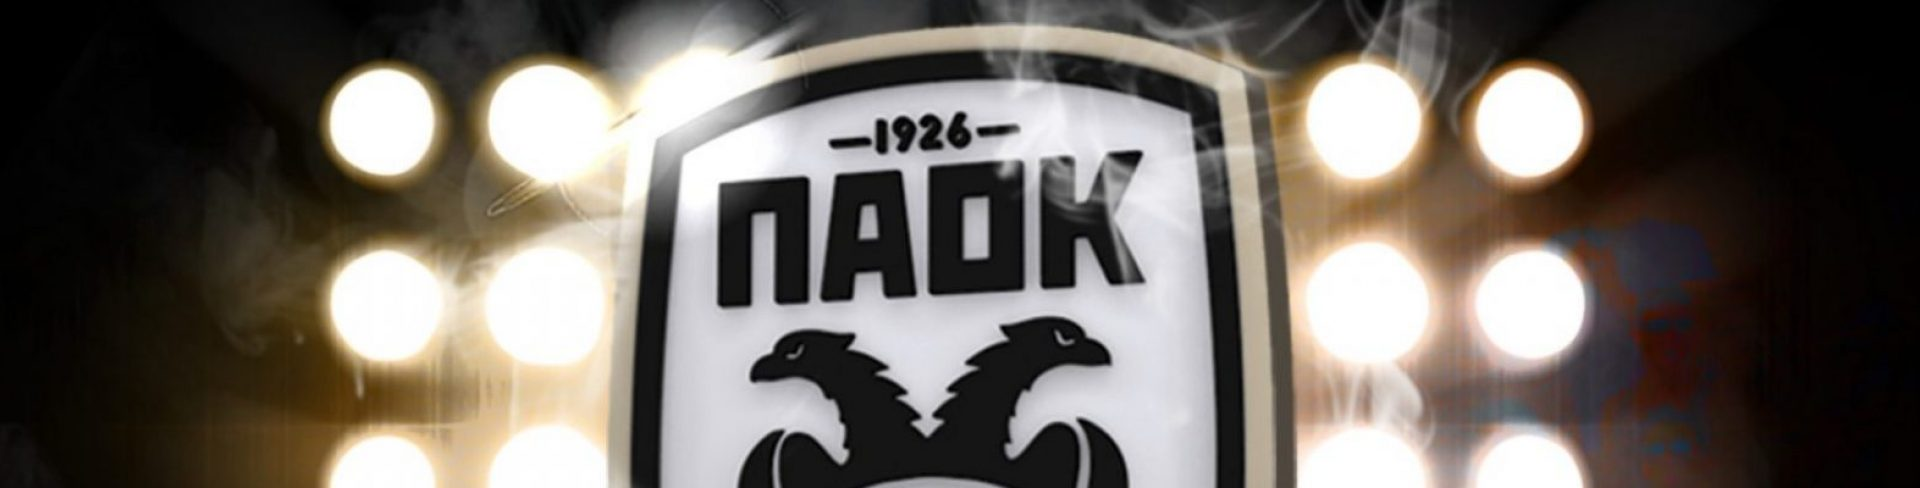 PAOK F.C. Official Newsletter